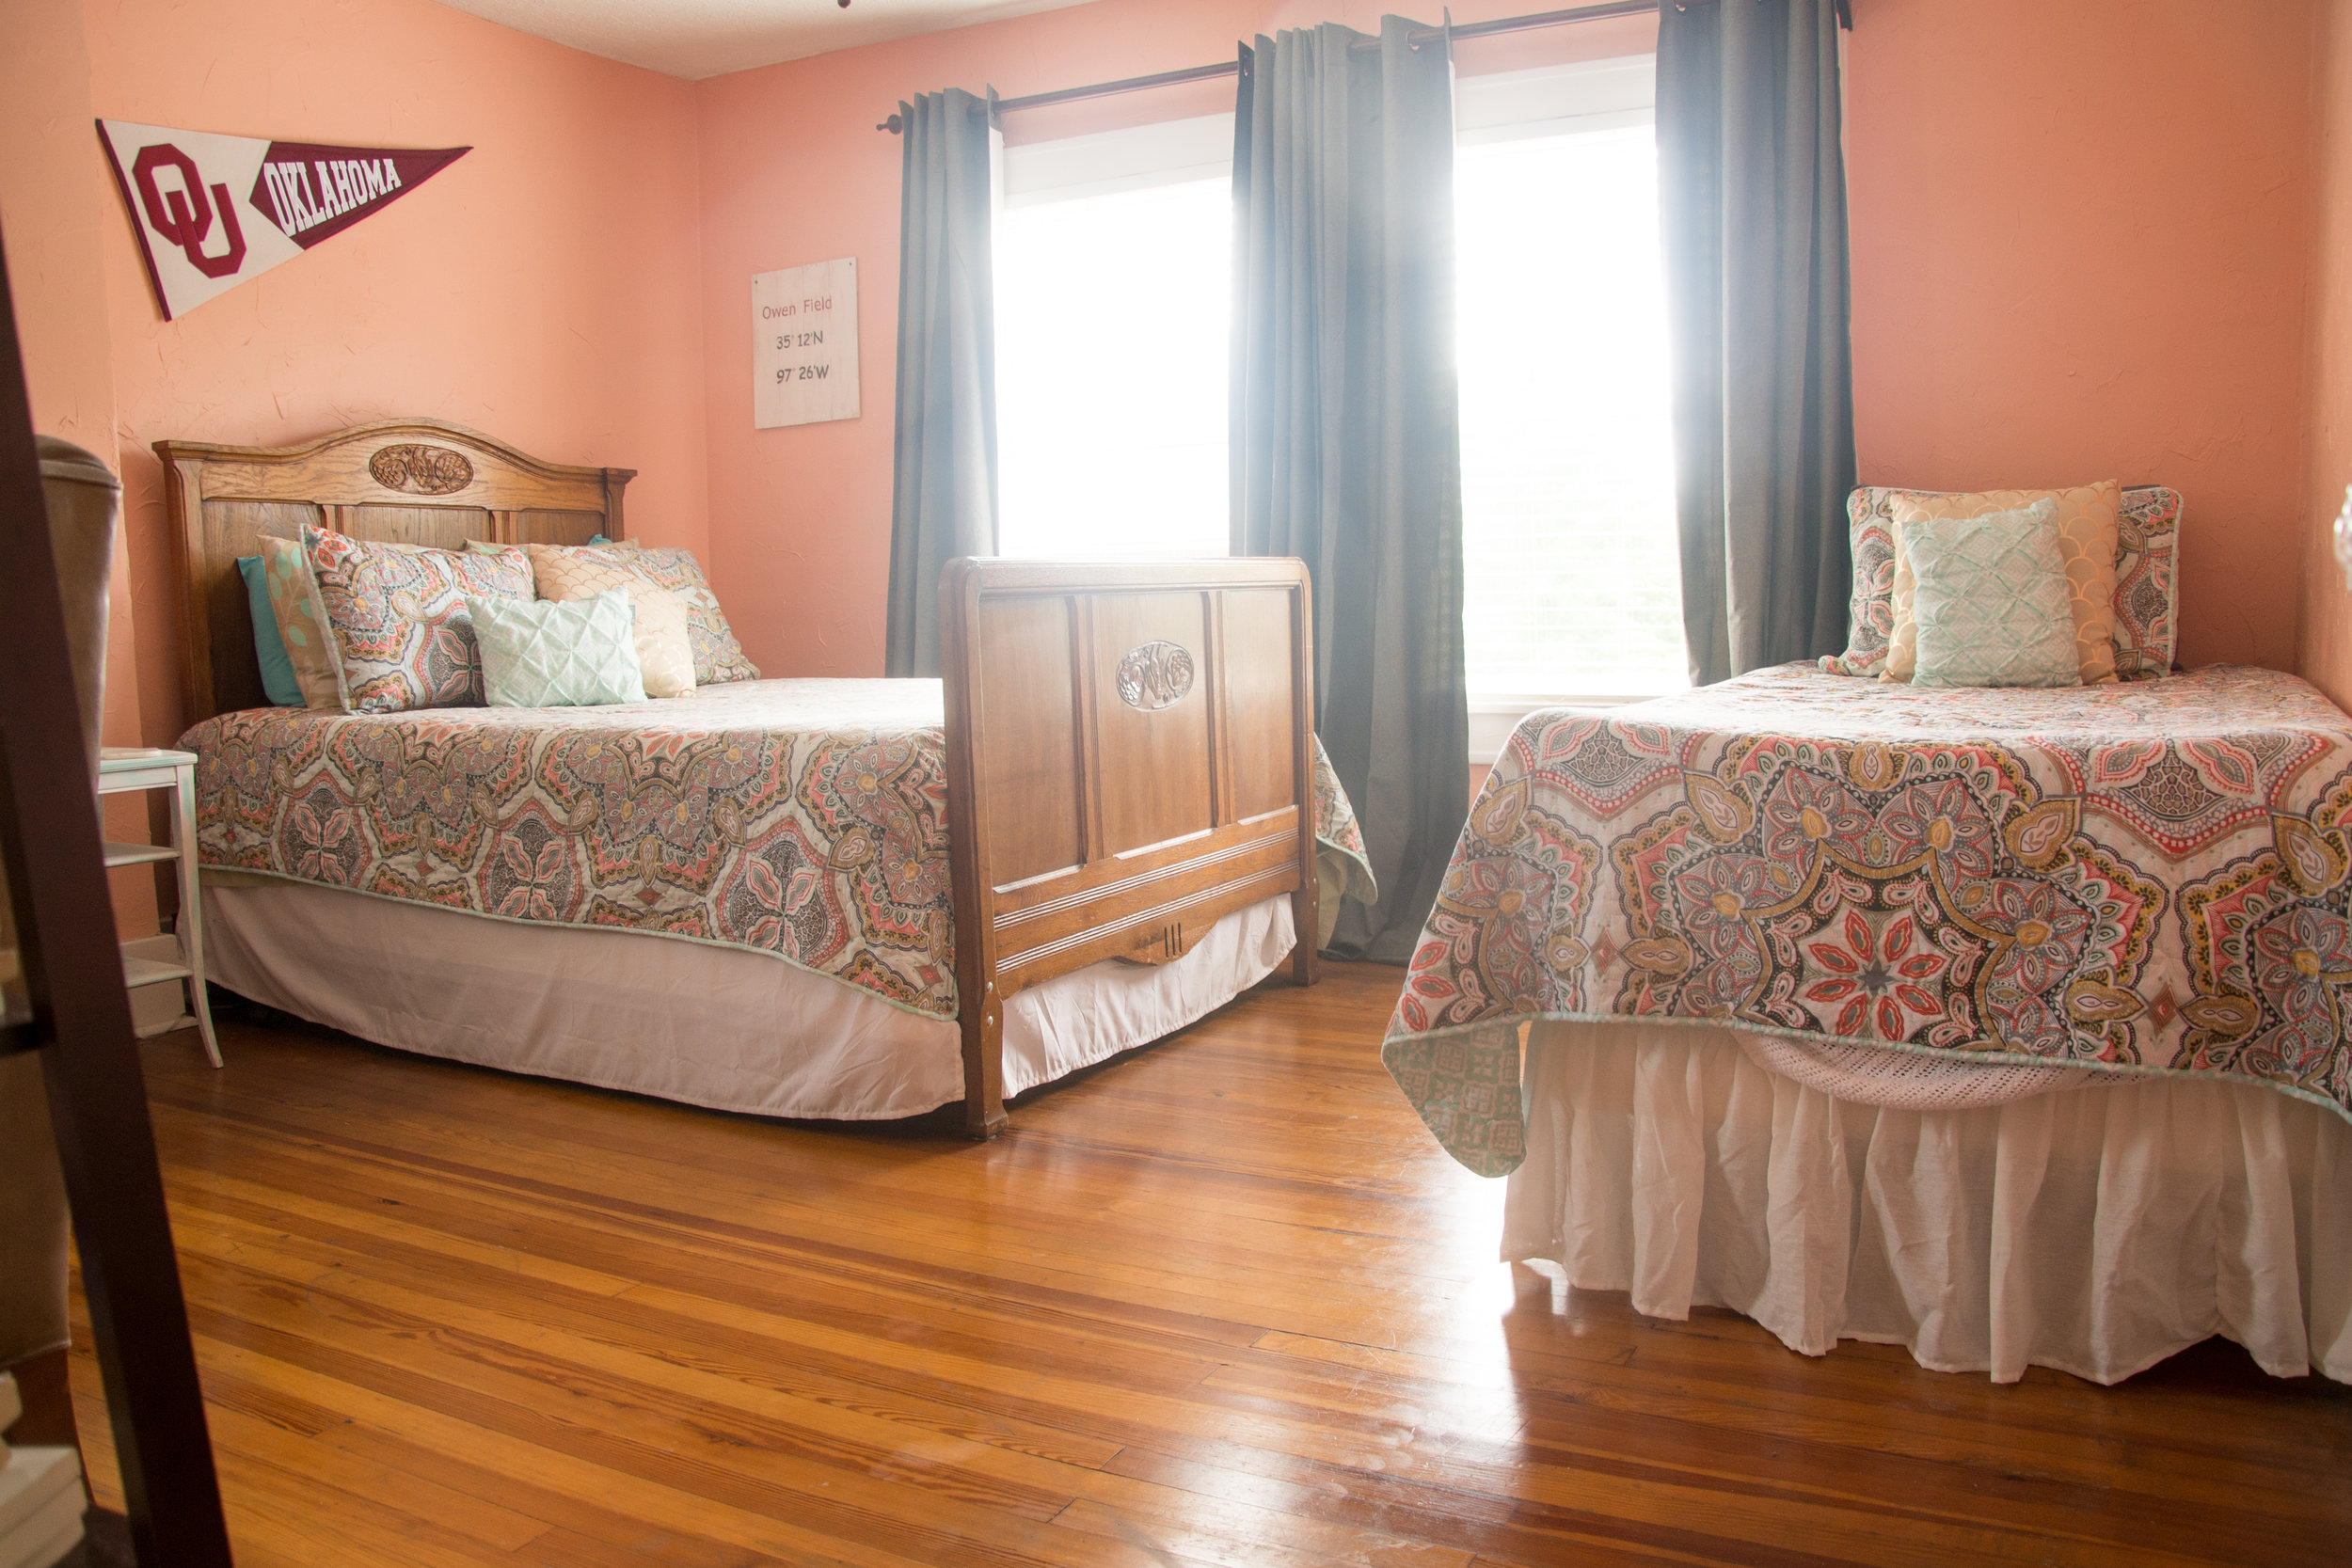 Bed and Breakfast in Norman Oklahoma